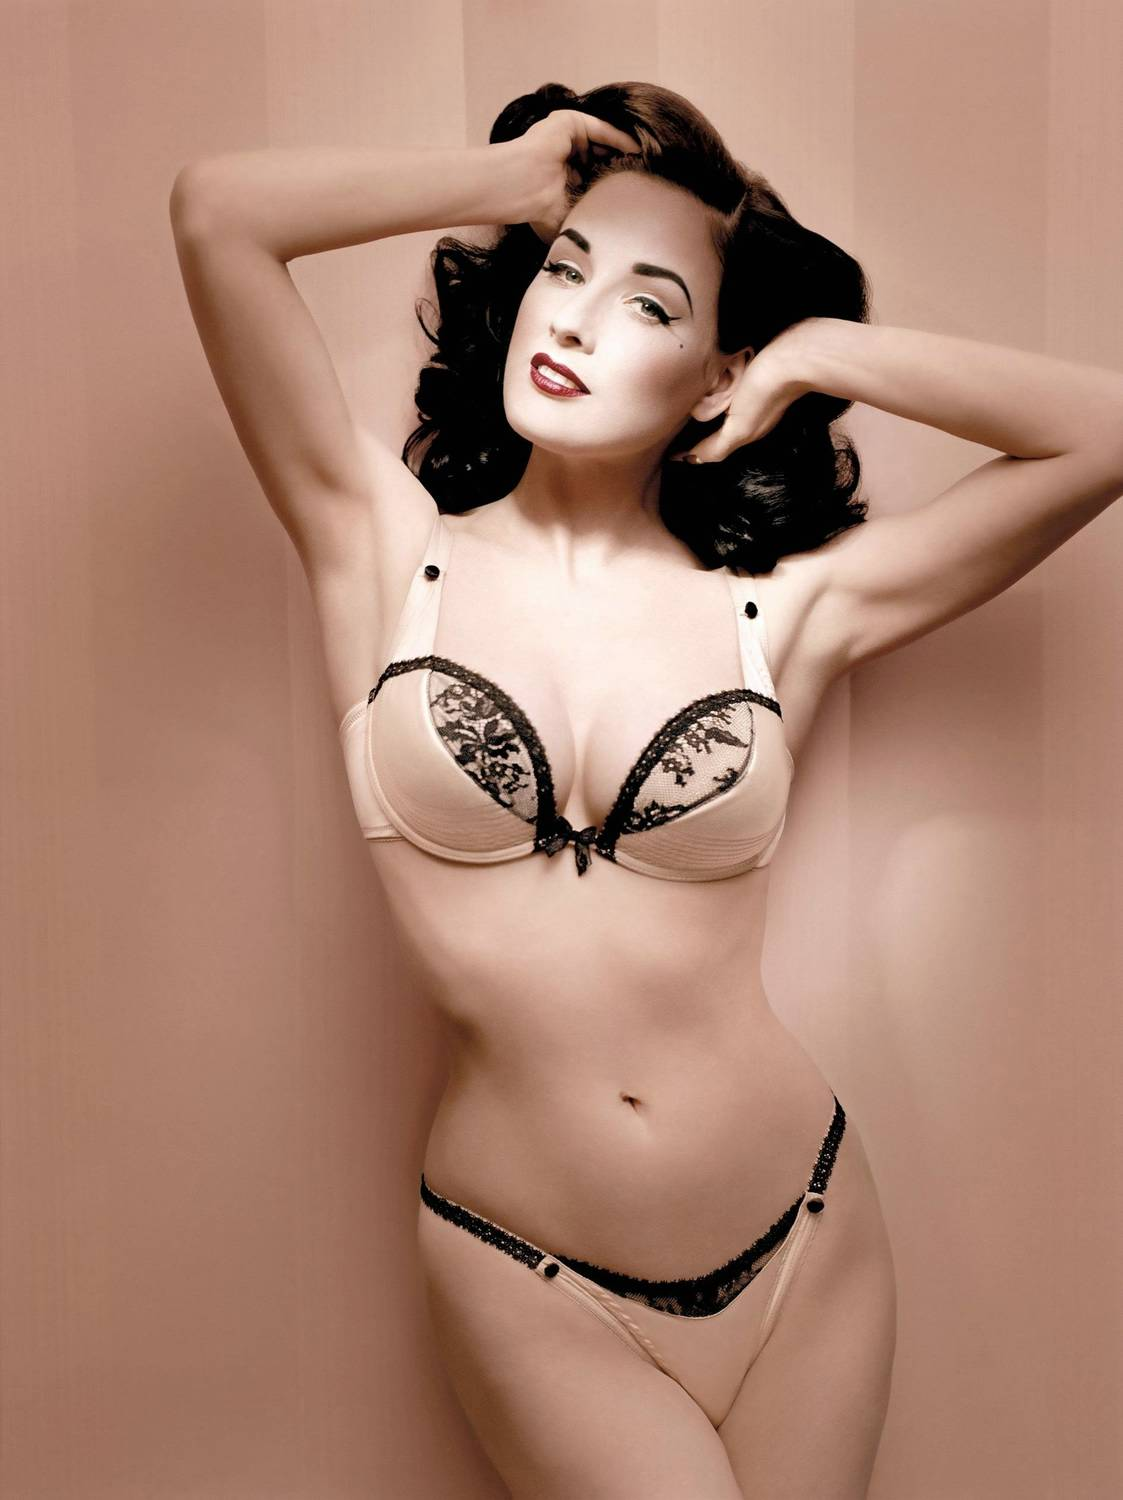 Feast your eyes on Dita Von Teese. This comely young lady is a model, ...